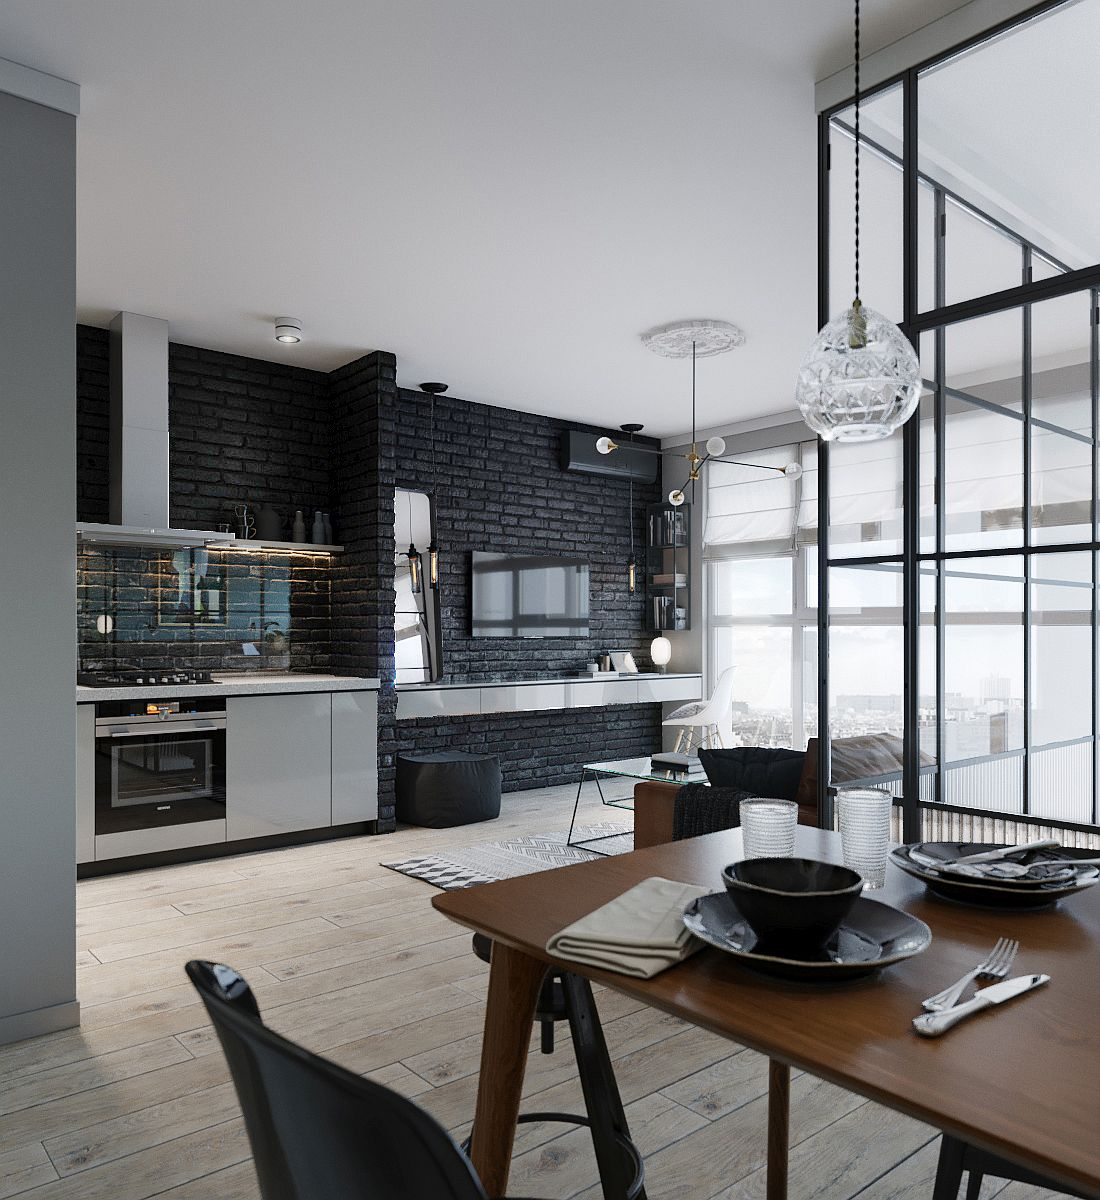 Single-wall kitchen, dining area and living room of the small Kiev Apartment